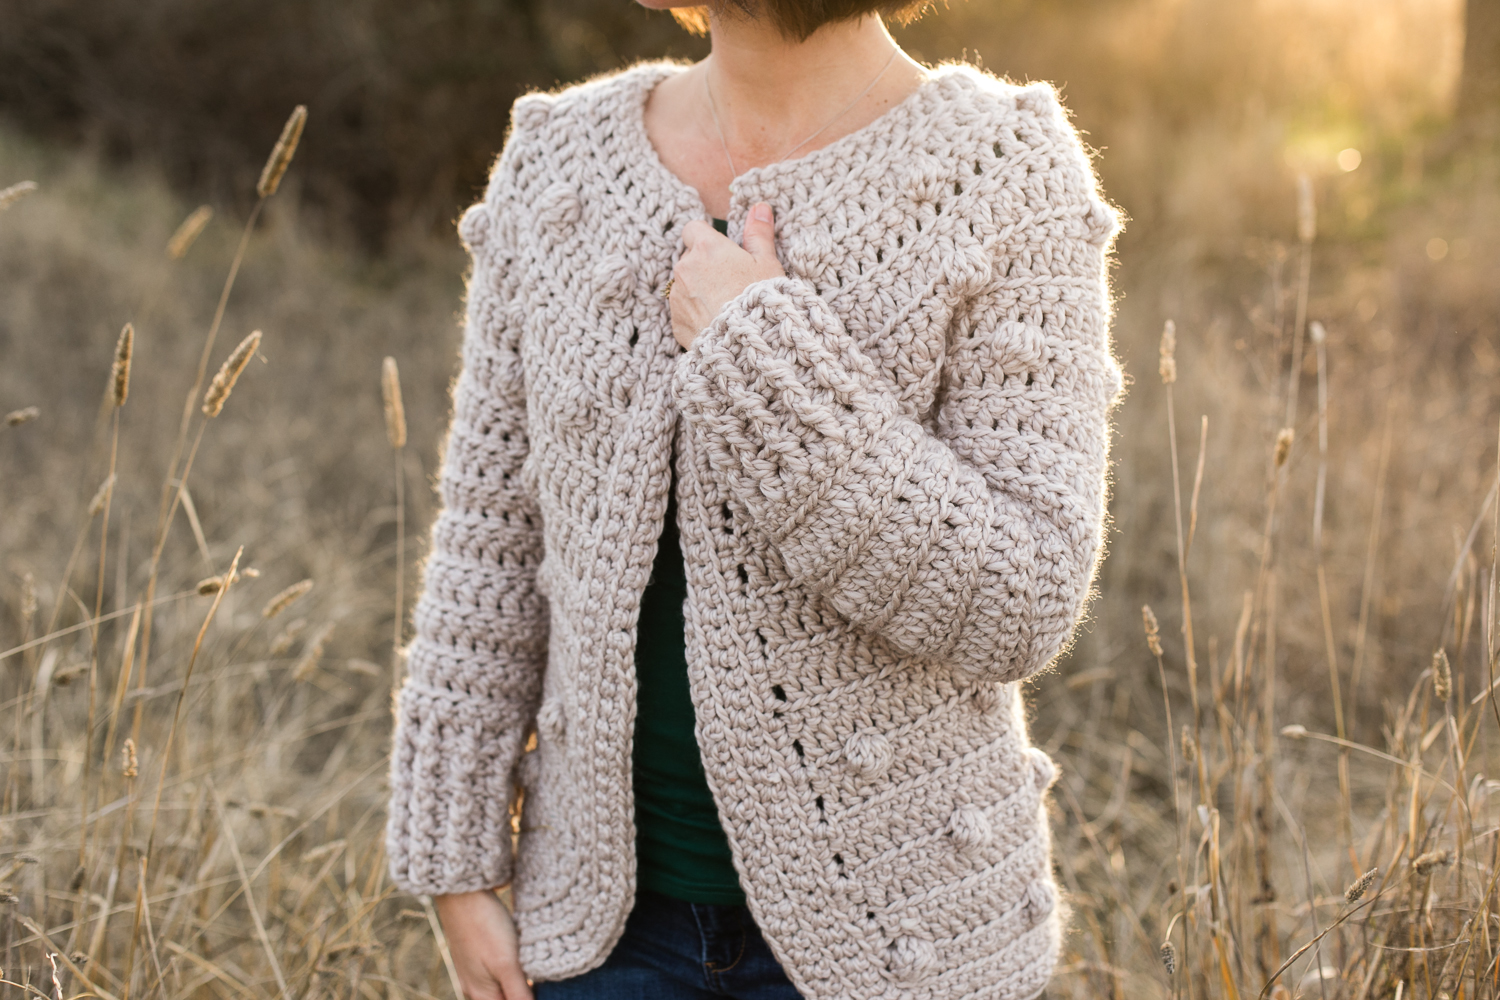 Hartley crochet sweater pattern